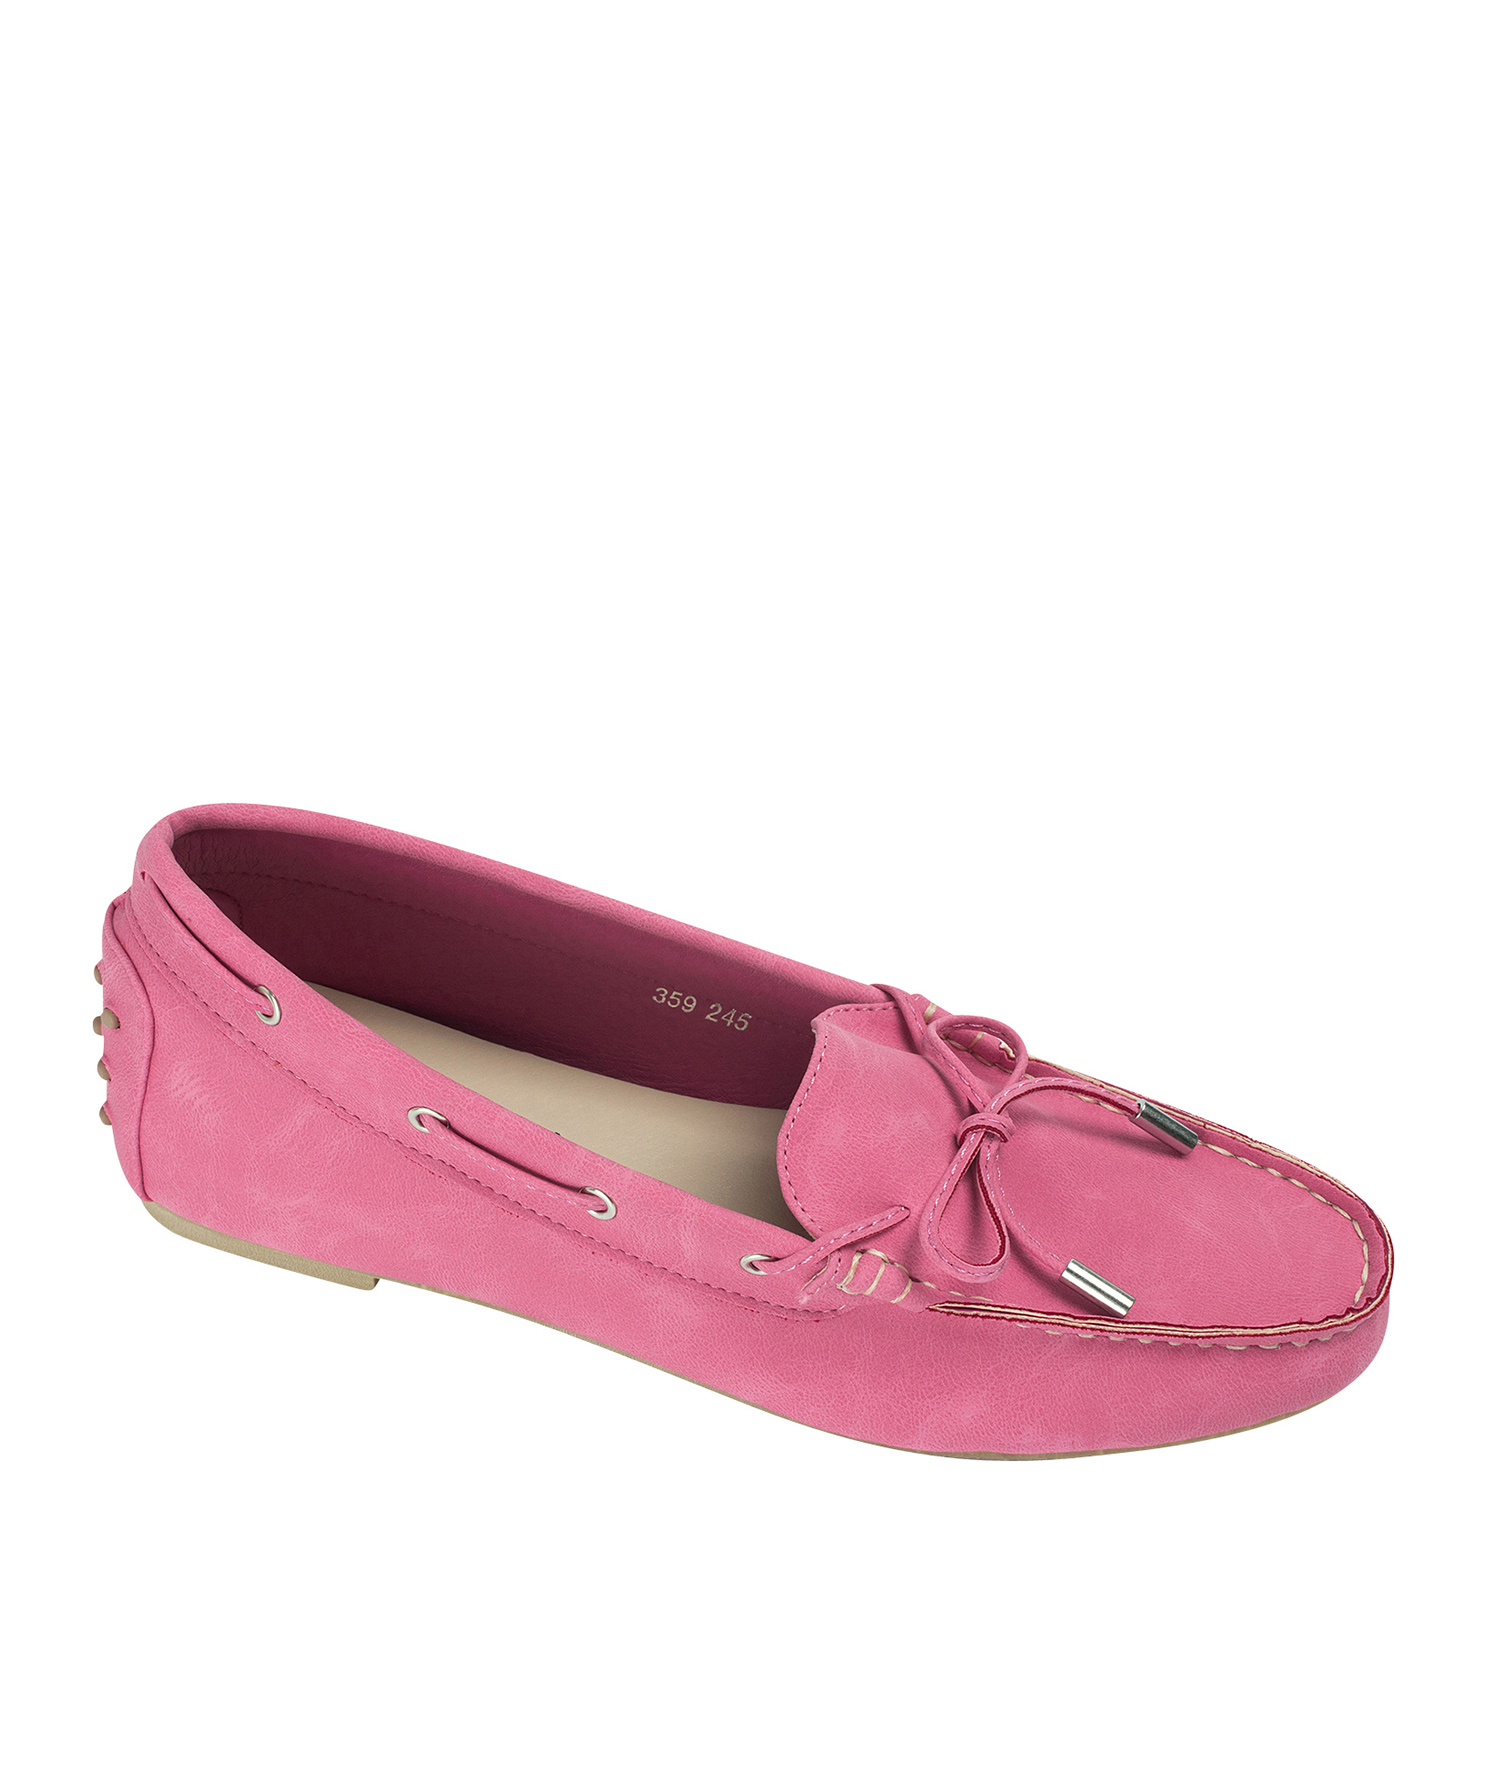 e7479cb23e3 AnnaKastle Womens Vegan Leather Driving Moc Loafers Hot Pink